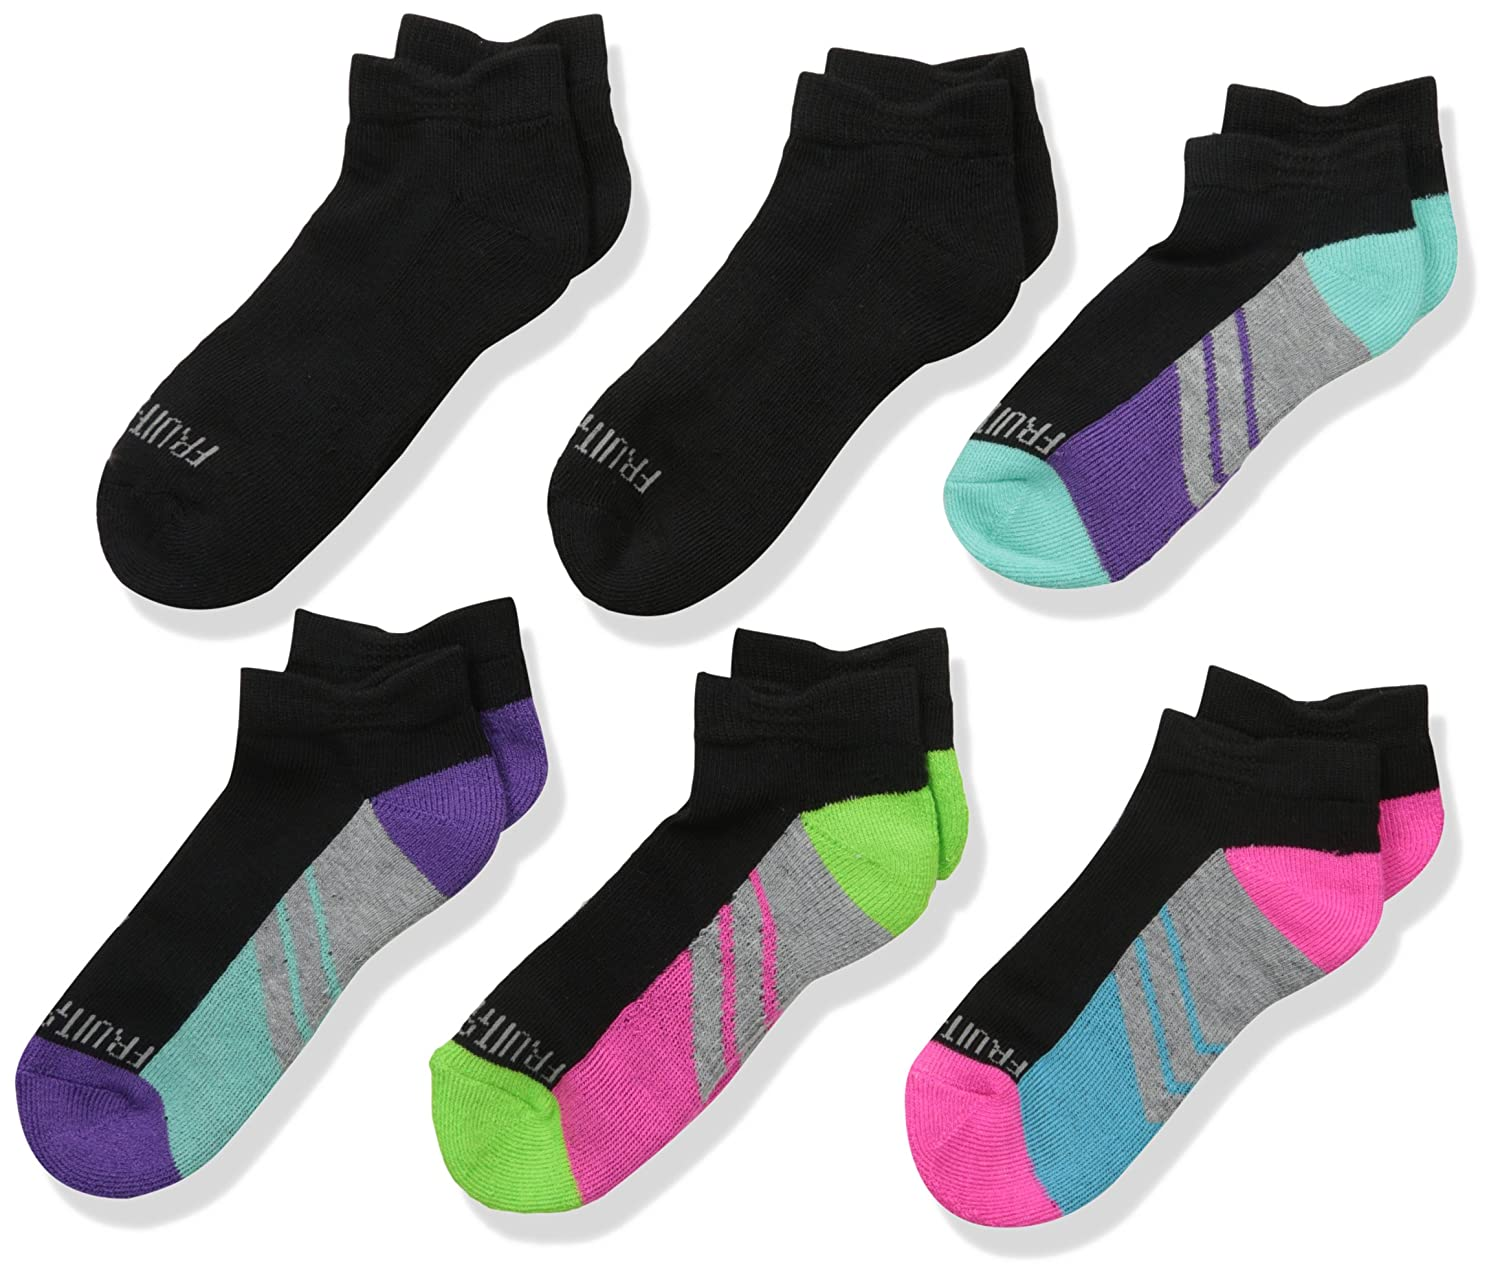 Fruit of the Loom Girls Cushion Low Cut with Arch Support 6 Pack Sock